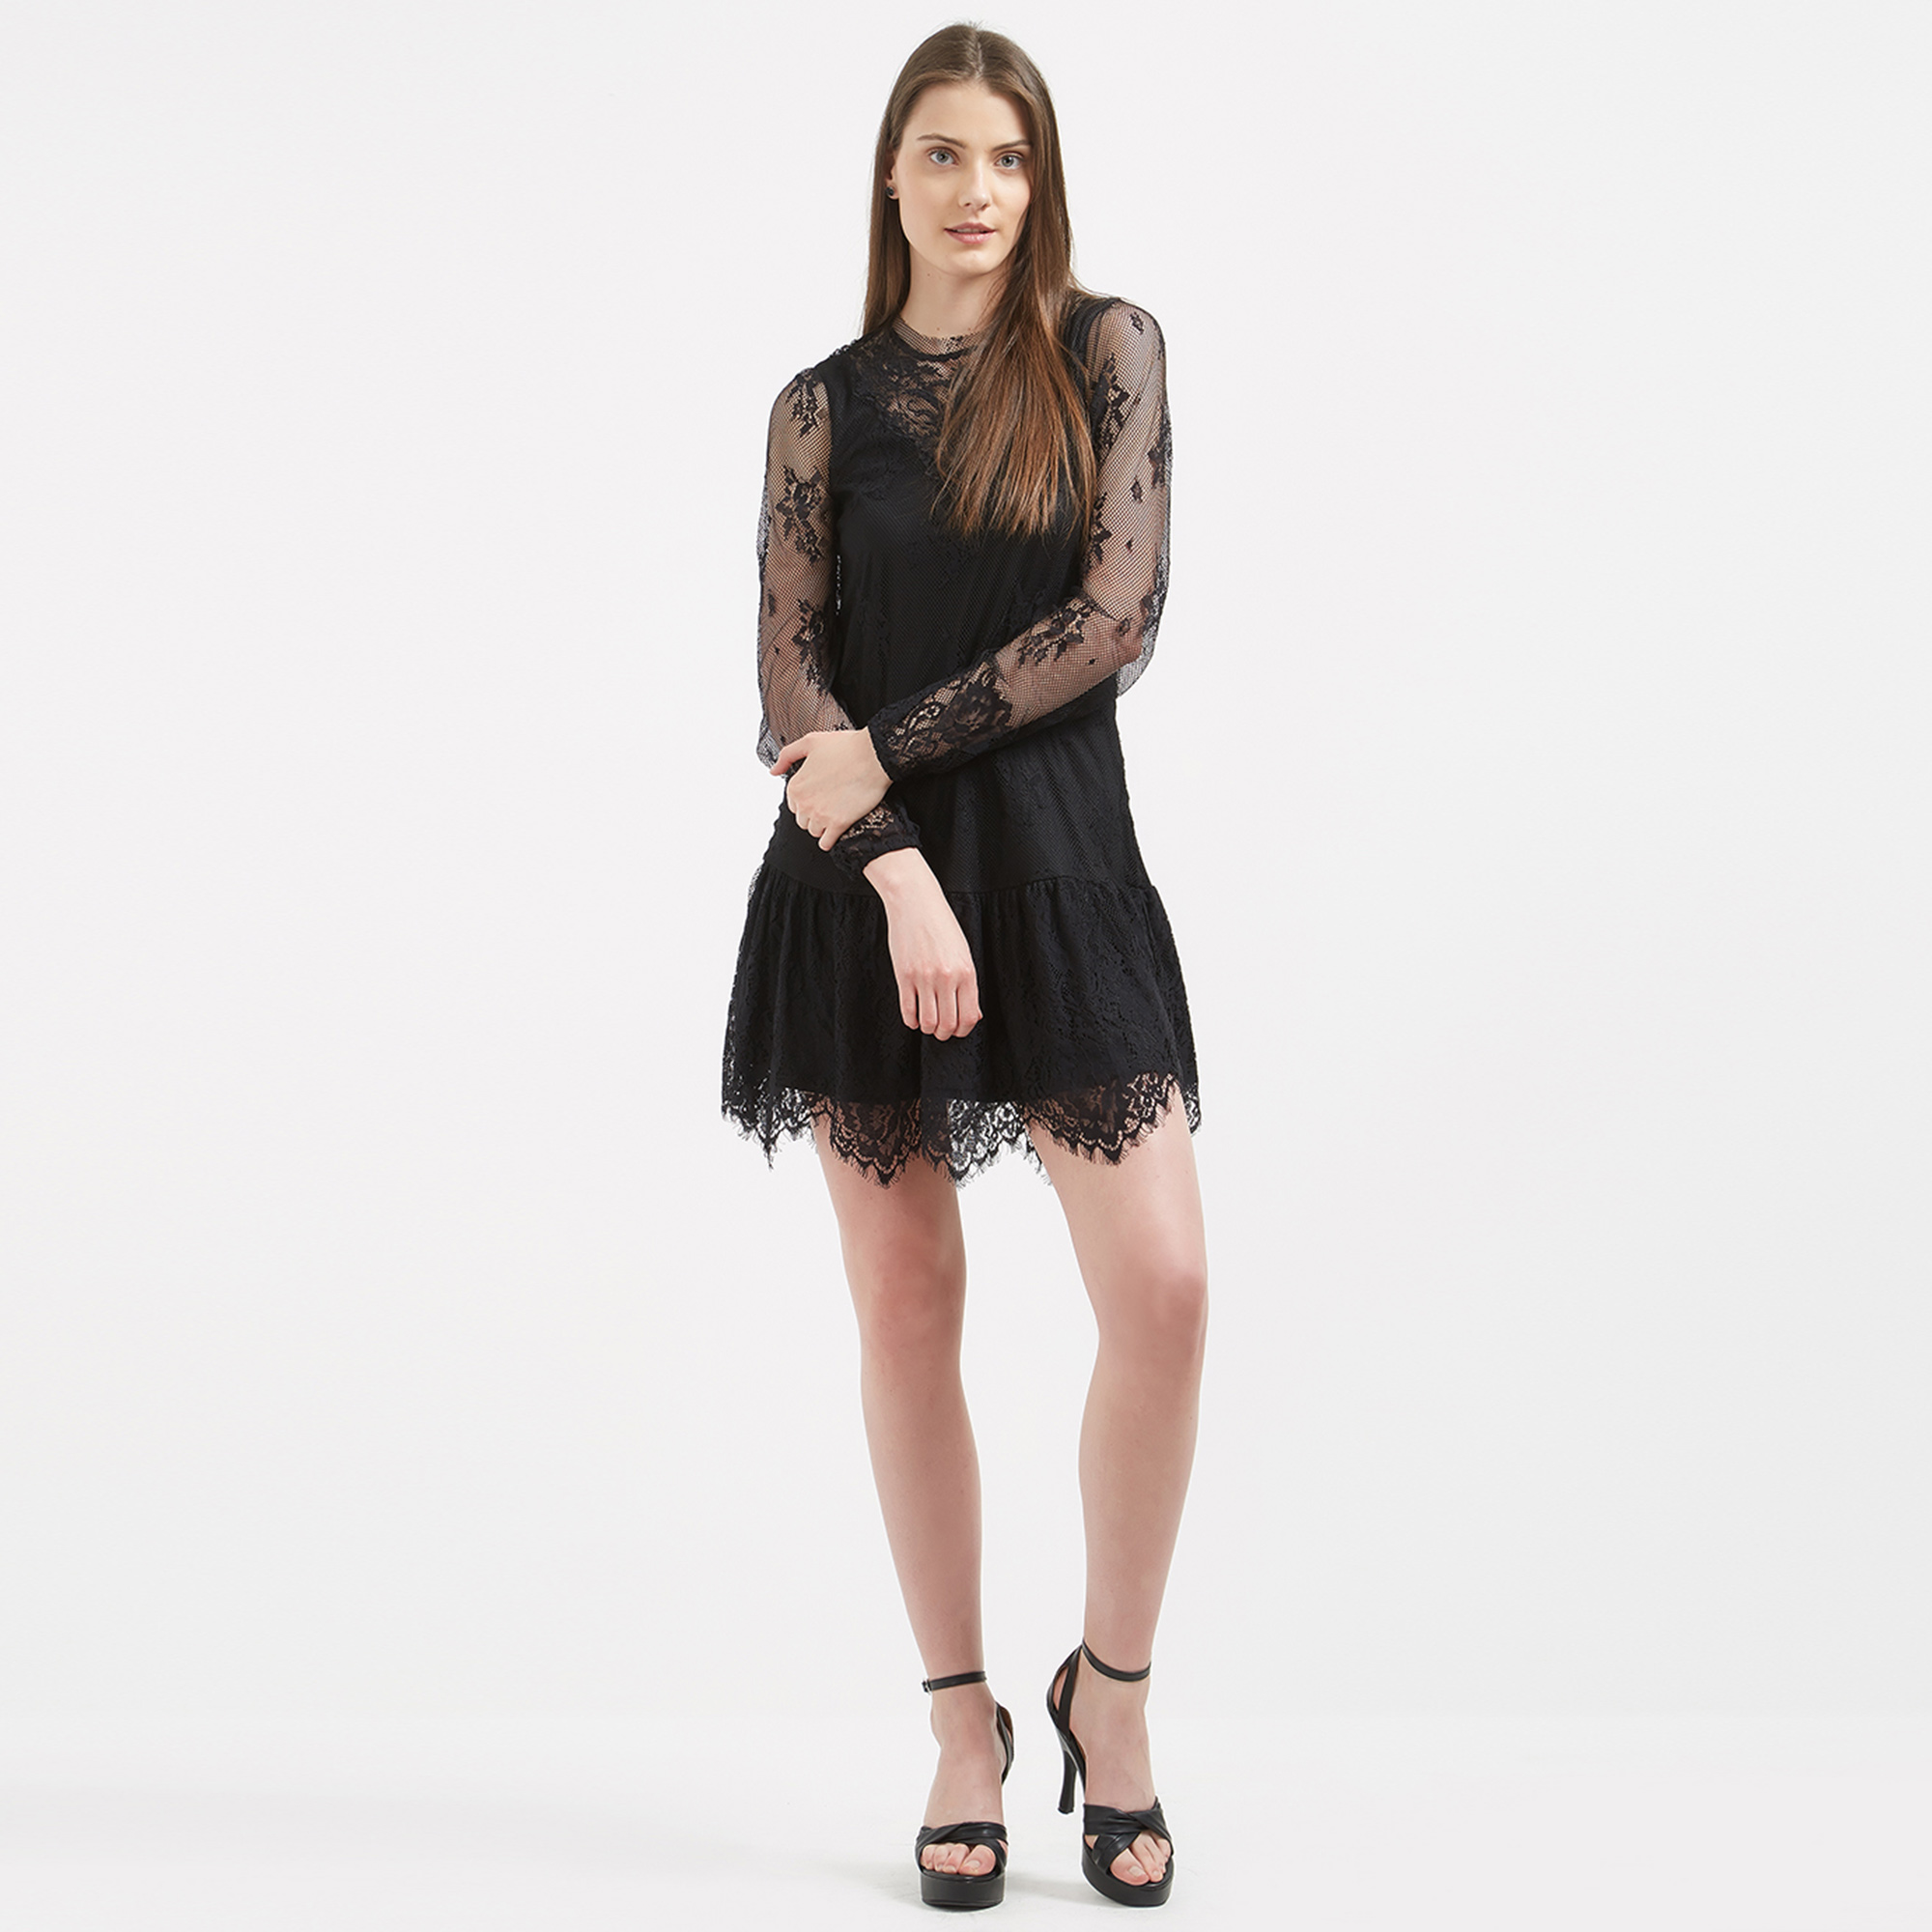 Image Of Black Many Wear Dress: Buy Bold Black Colored Casual Party Wear Western Dress For